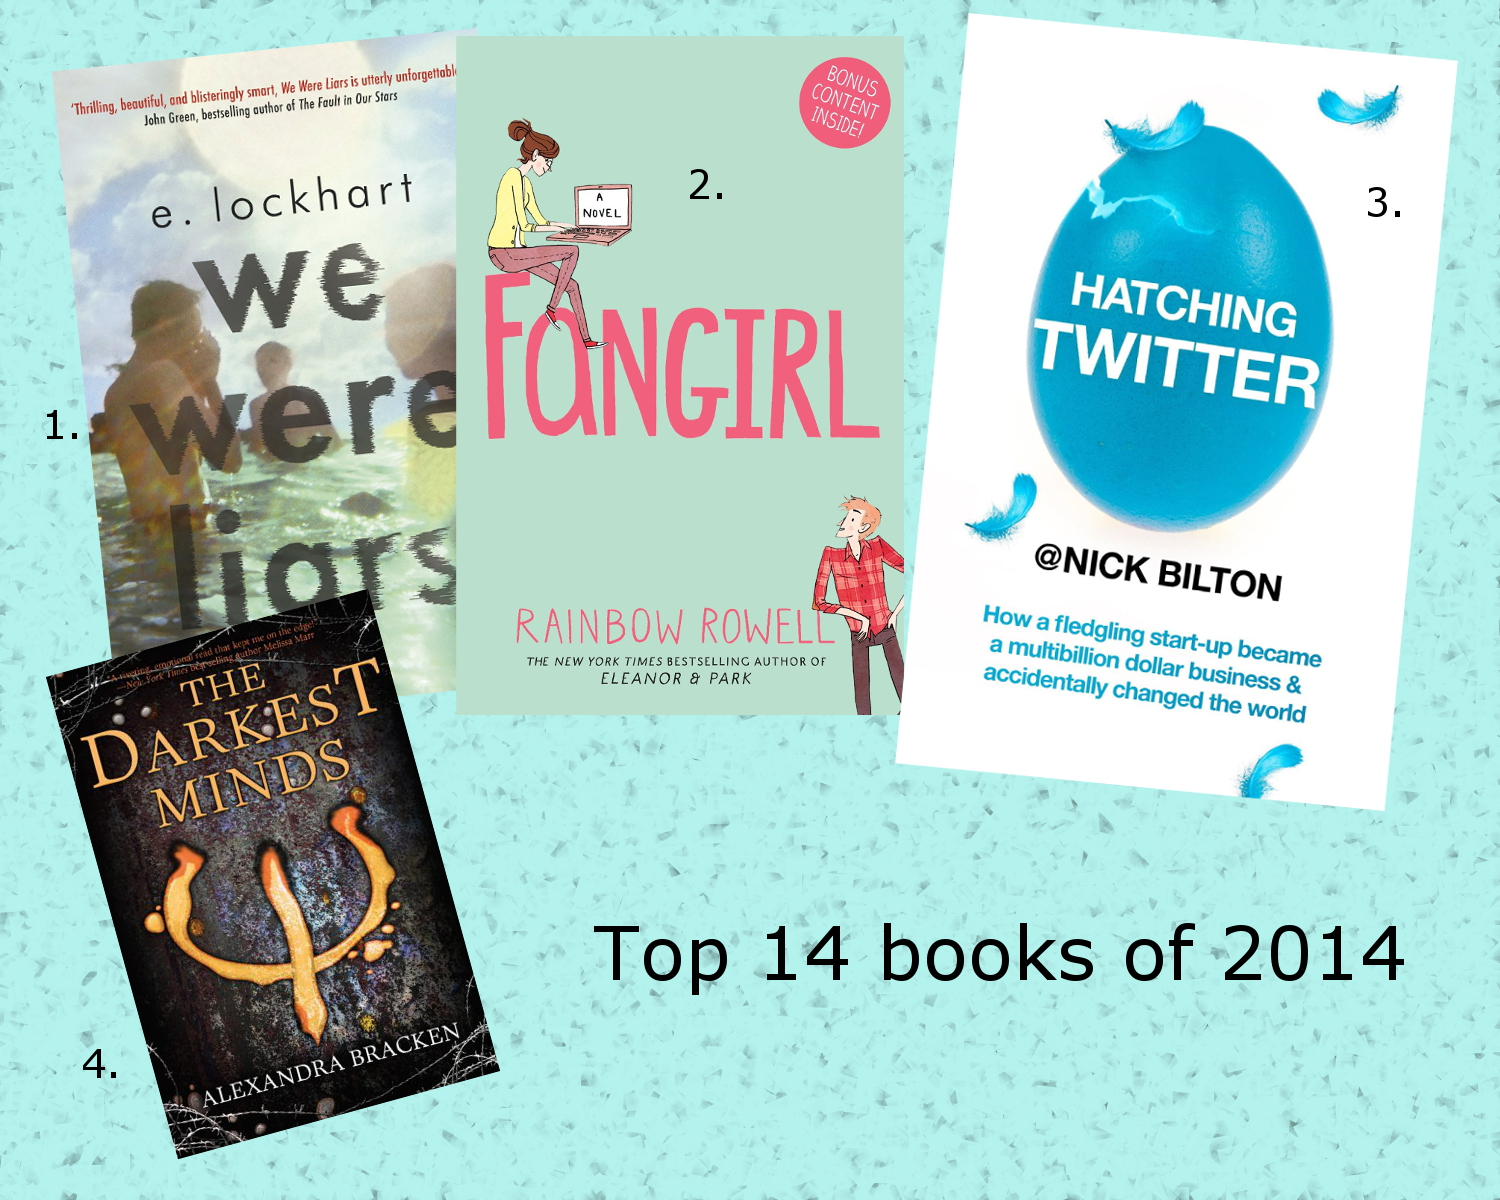 top 14 books of 2014